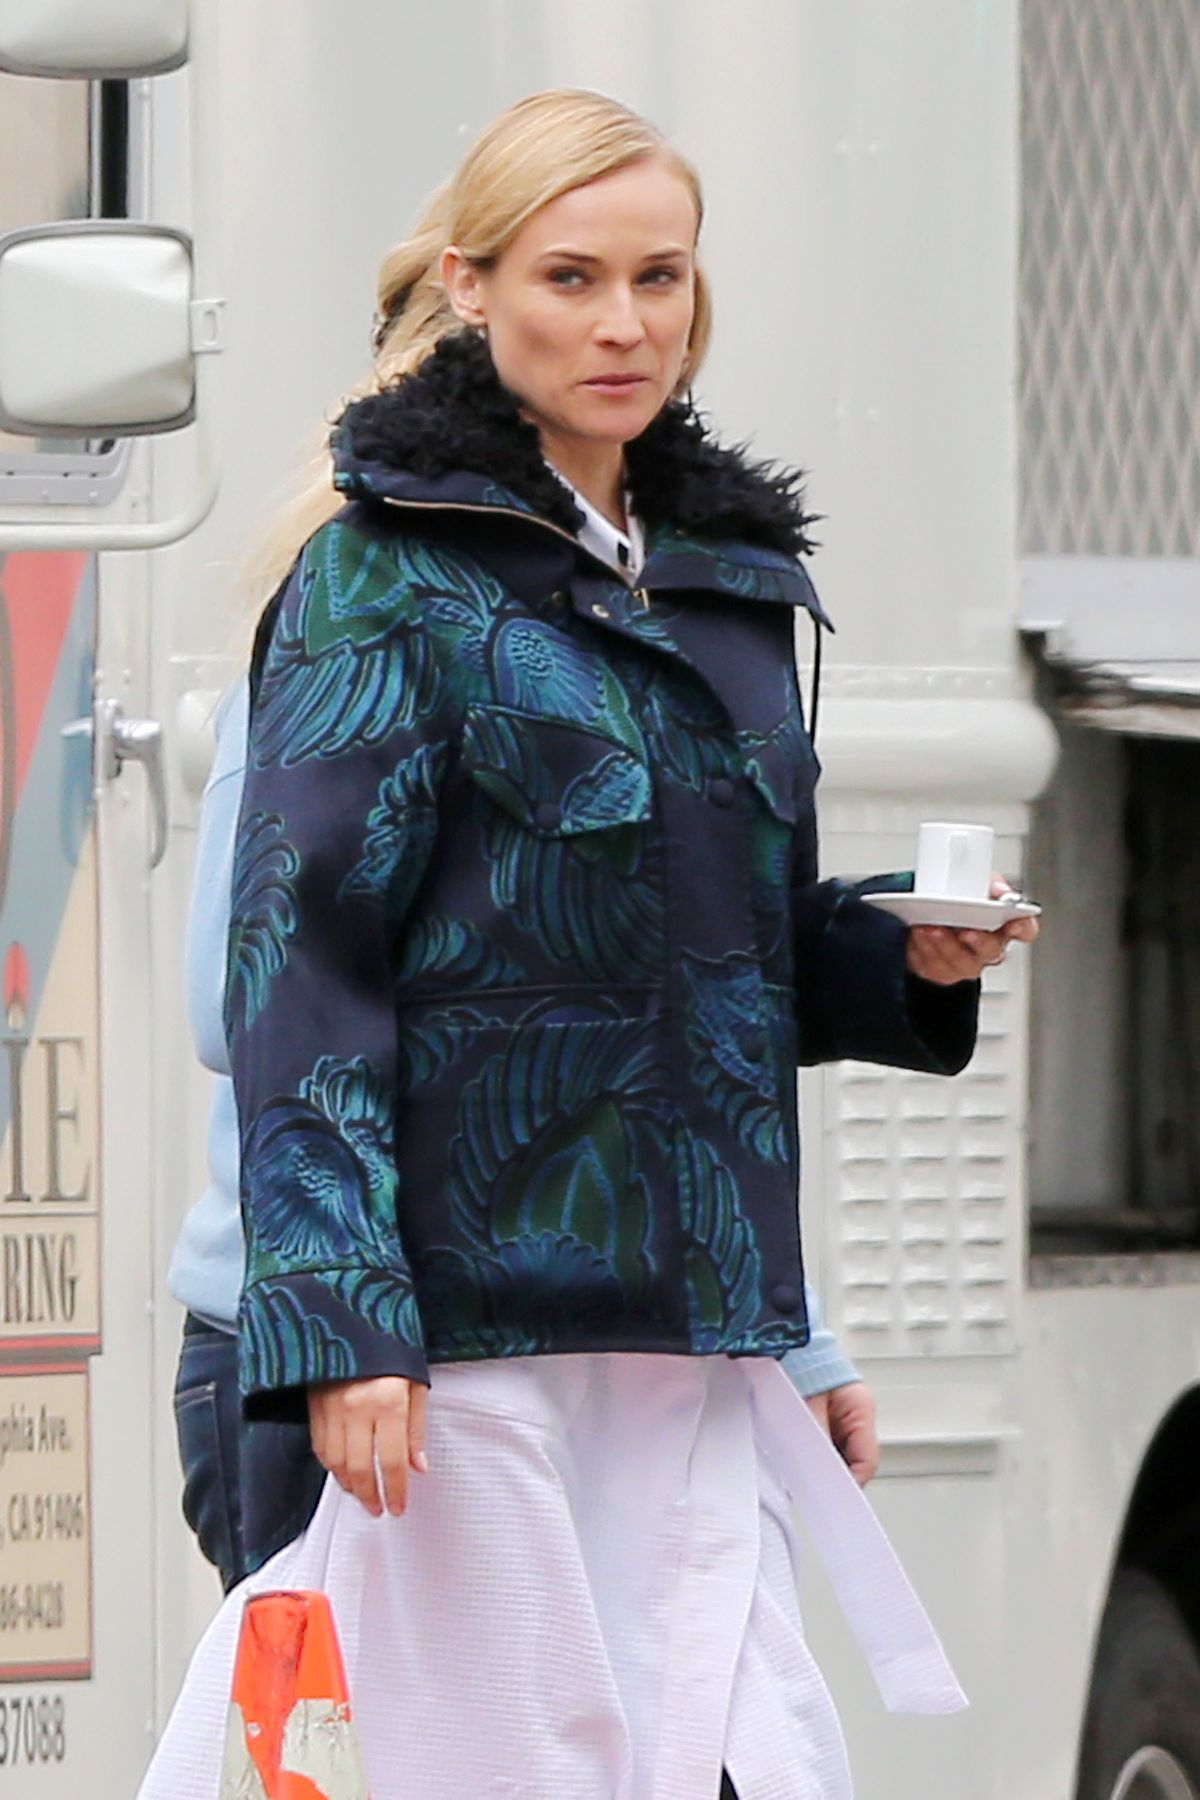 DIANE KRUGER on the Set of a Photoshoot for Chanel in Los Angeles